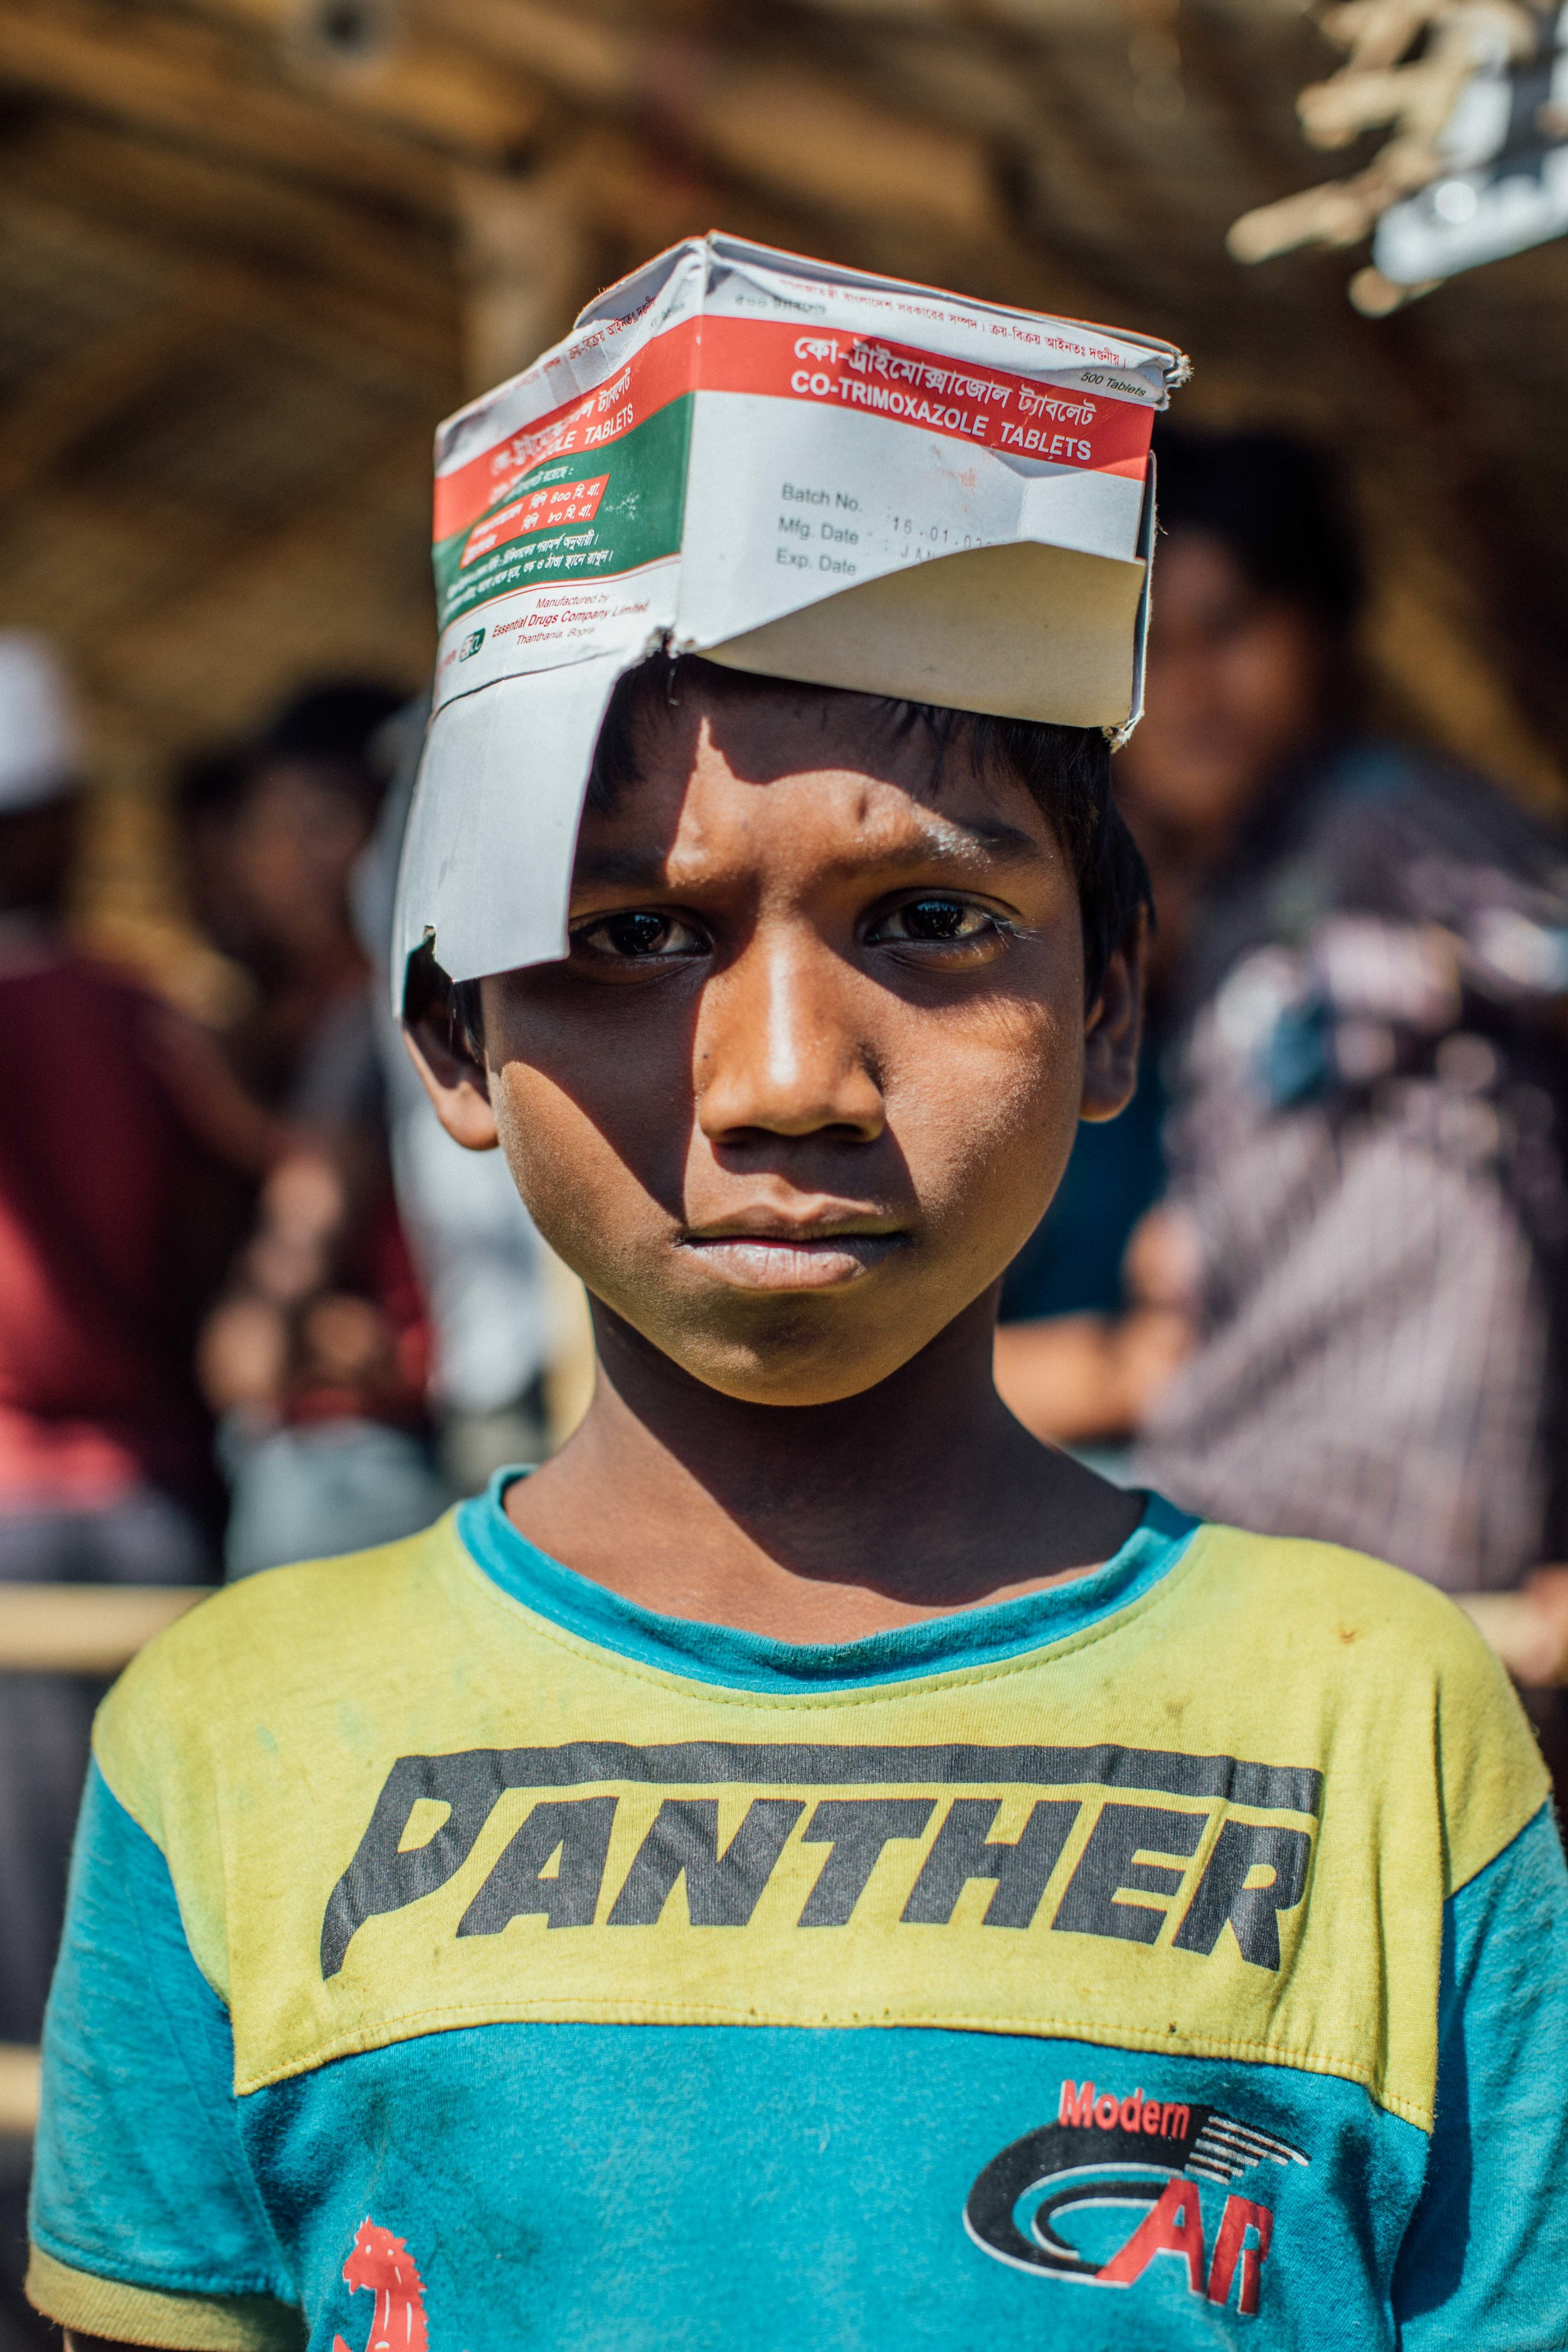 BOY WITH THE BOX FOR A HAT-1.JPG